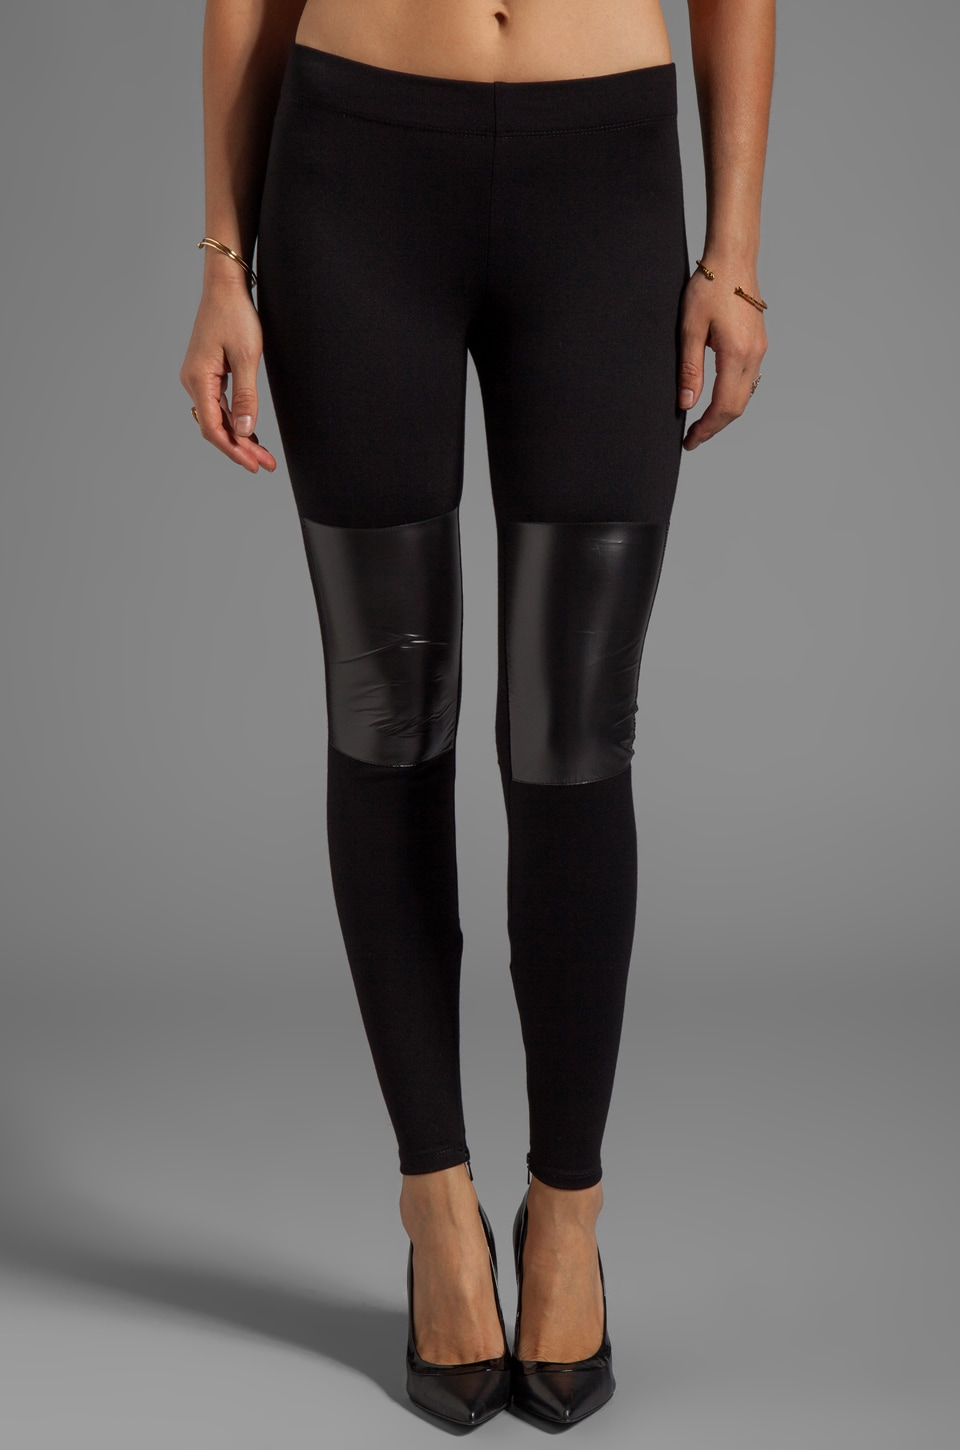 MAX FOWLES Sport Legging in Black